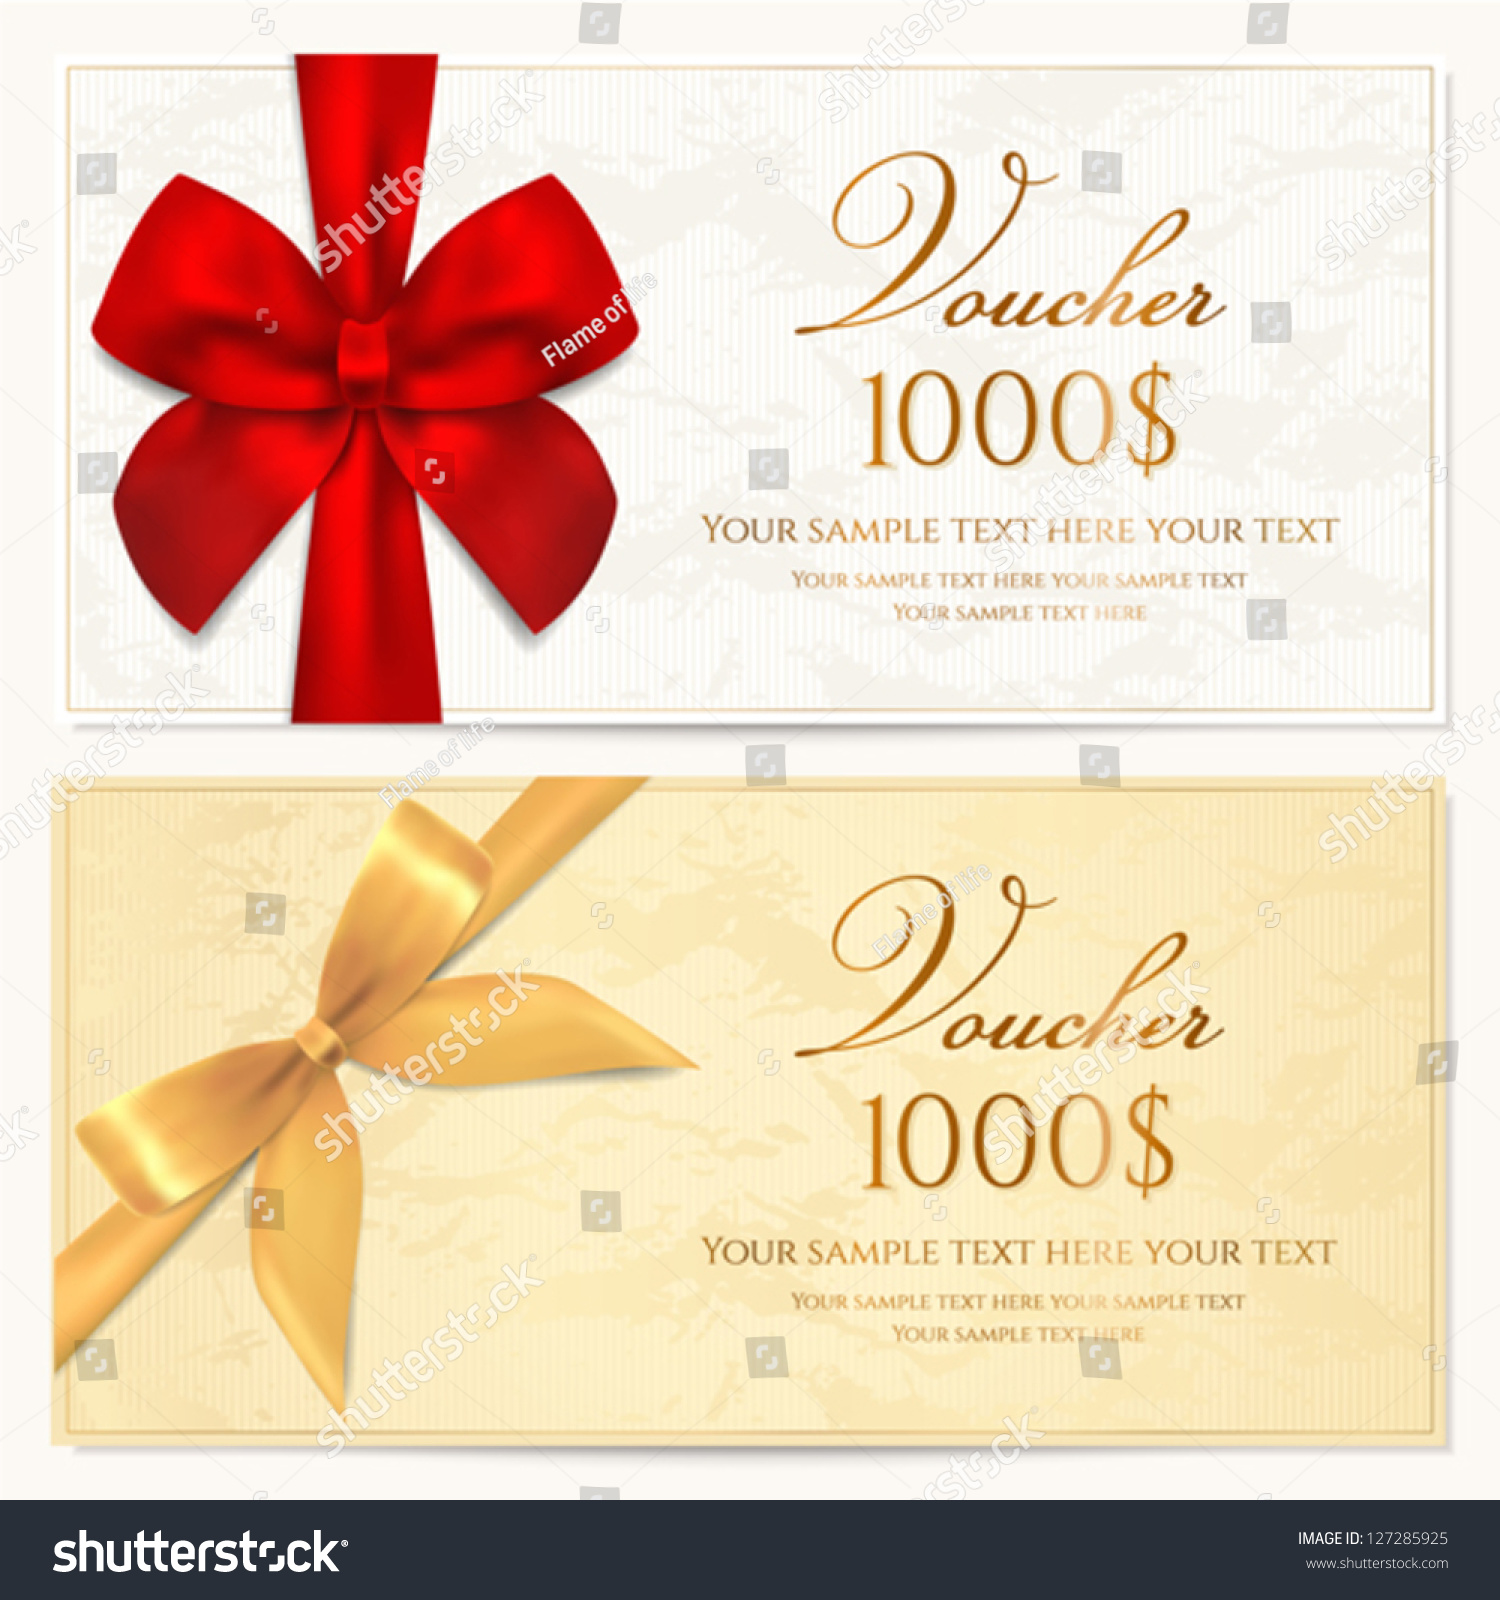 doc voucher templates blank voucher template  birthday vouchers template christmas gift certificate template voucher templates